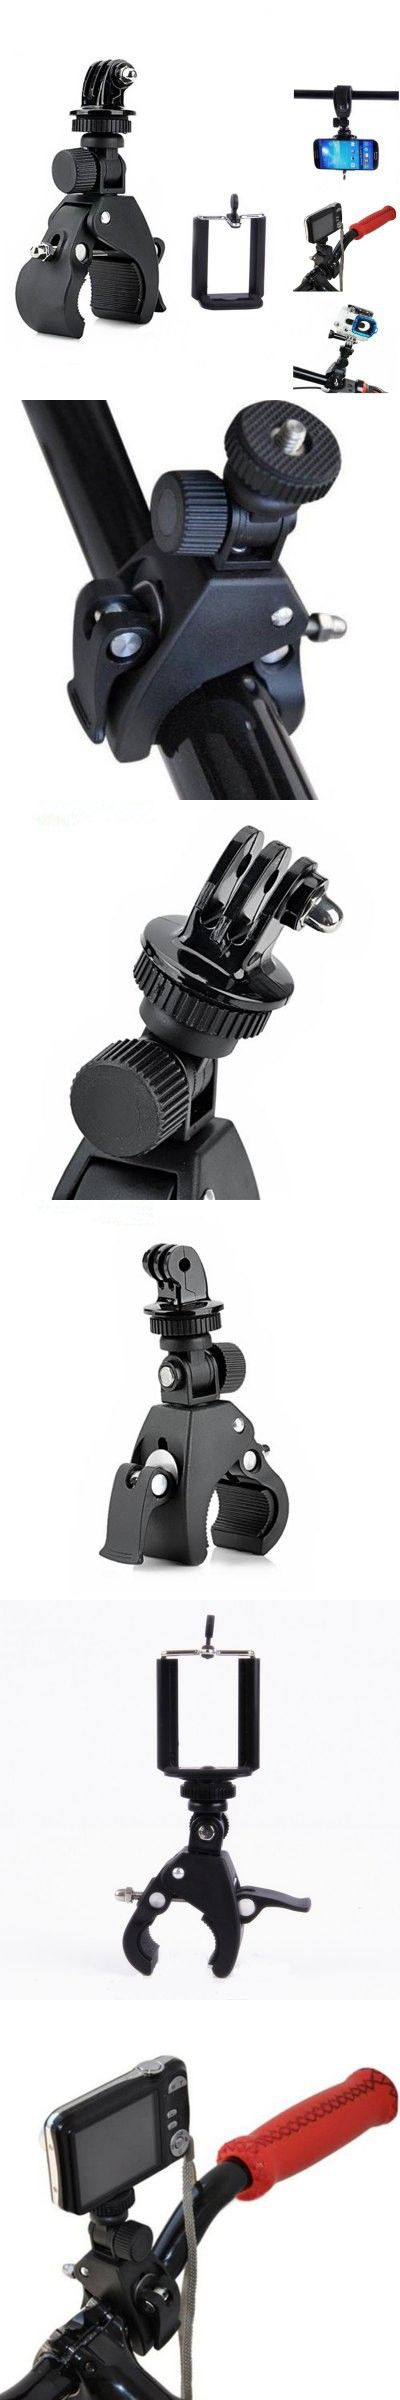 3-in-1 Bike Tripod Mount Sports Camera Holder with Connector-6.19